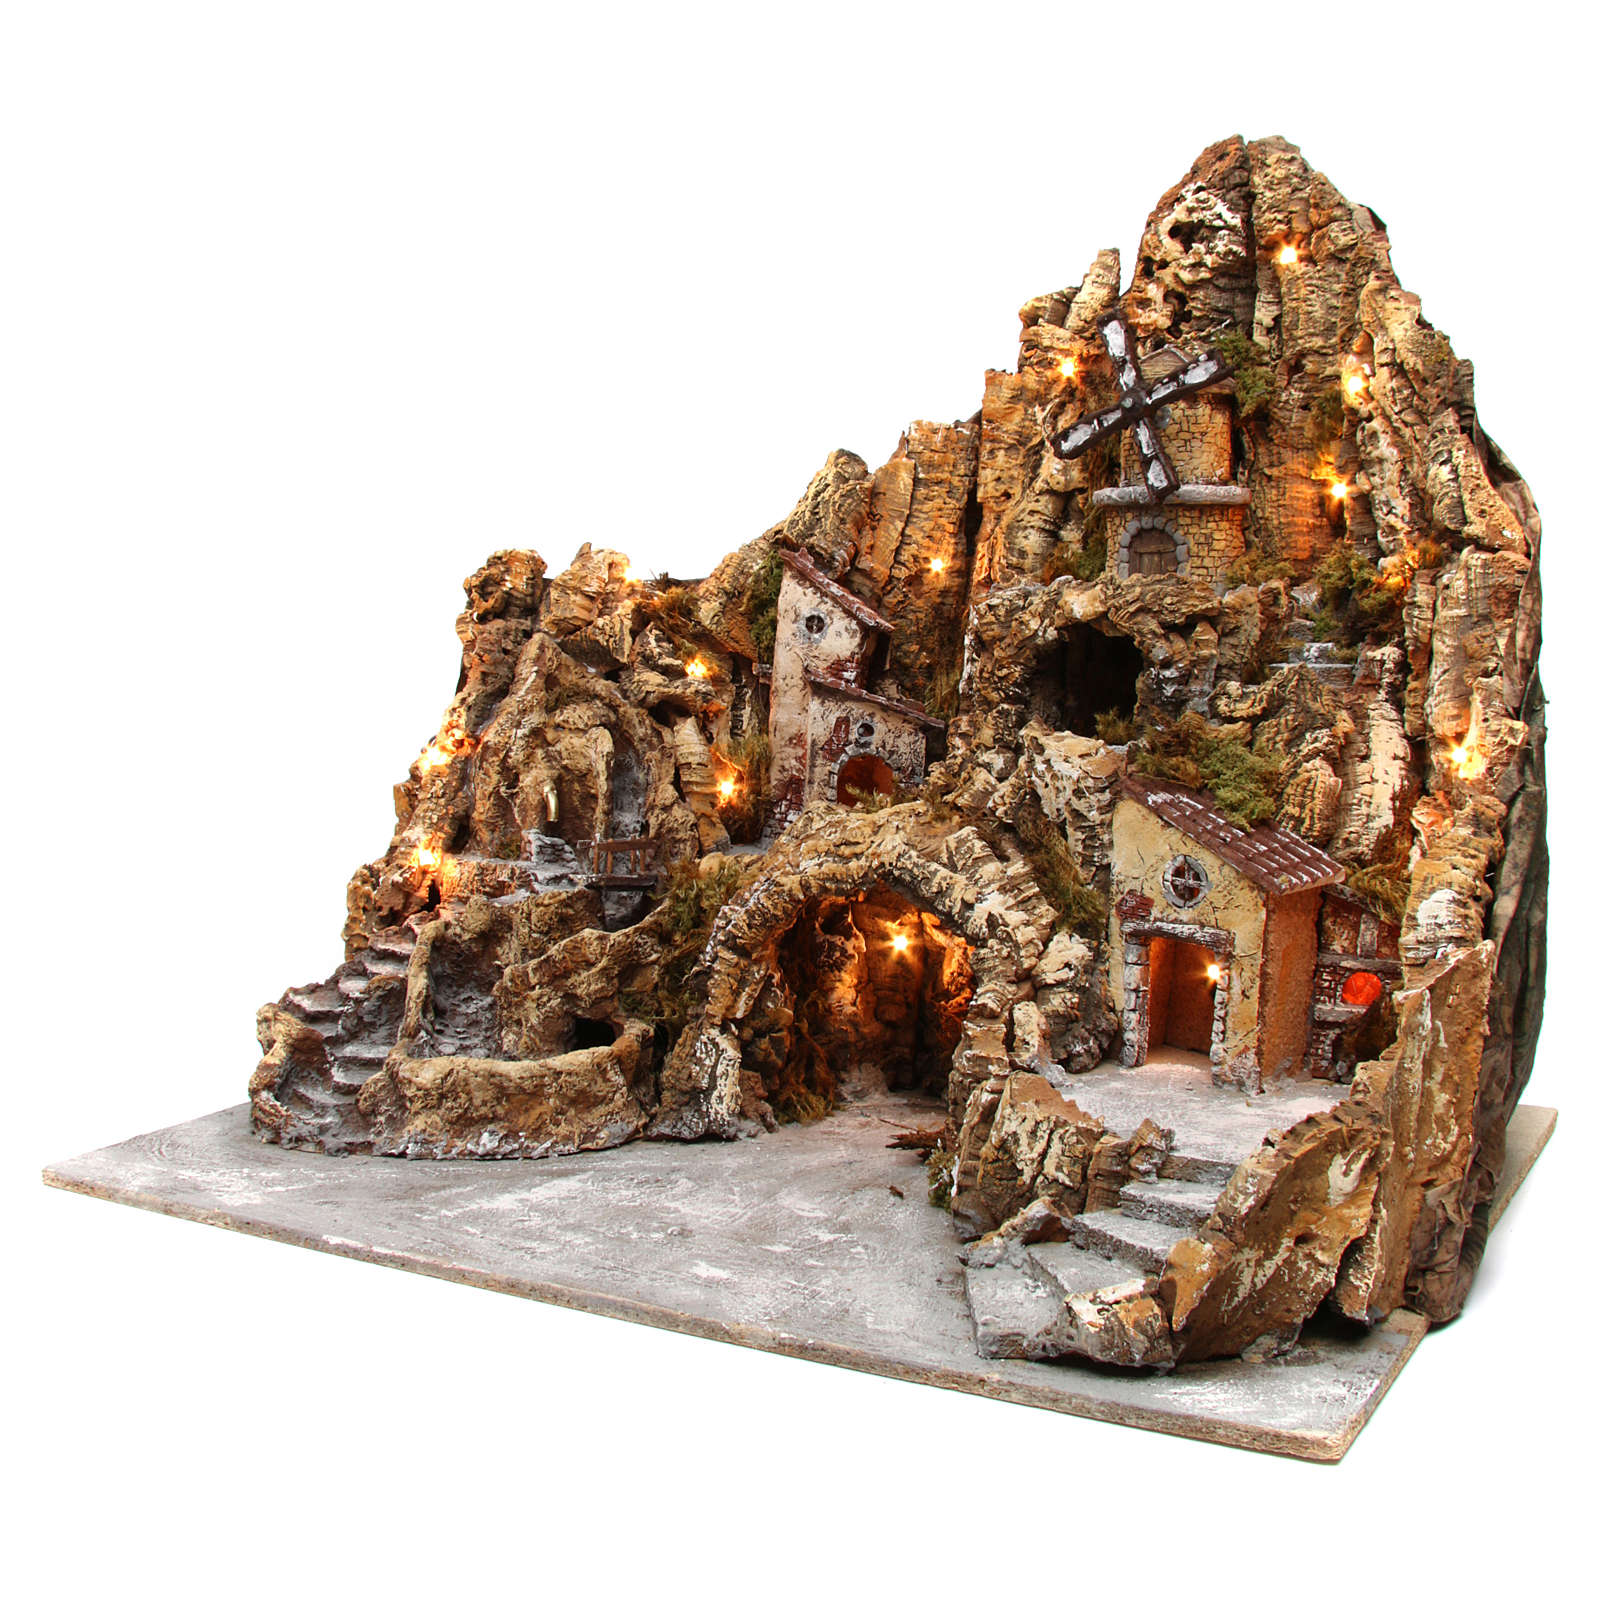 Nativity scene in wood, moss and cork with movements 60x70x65, Neapolitan style 4